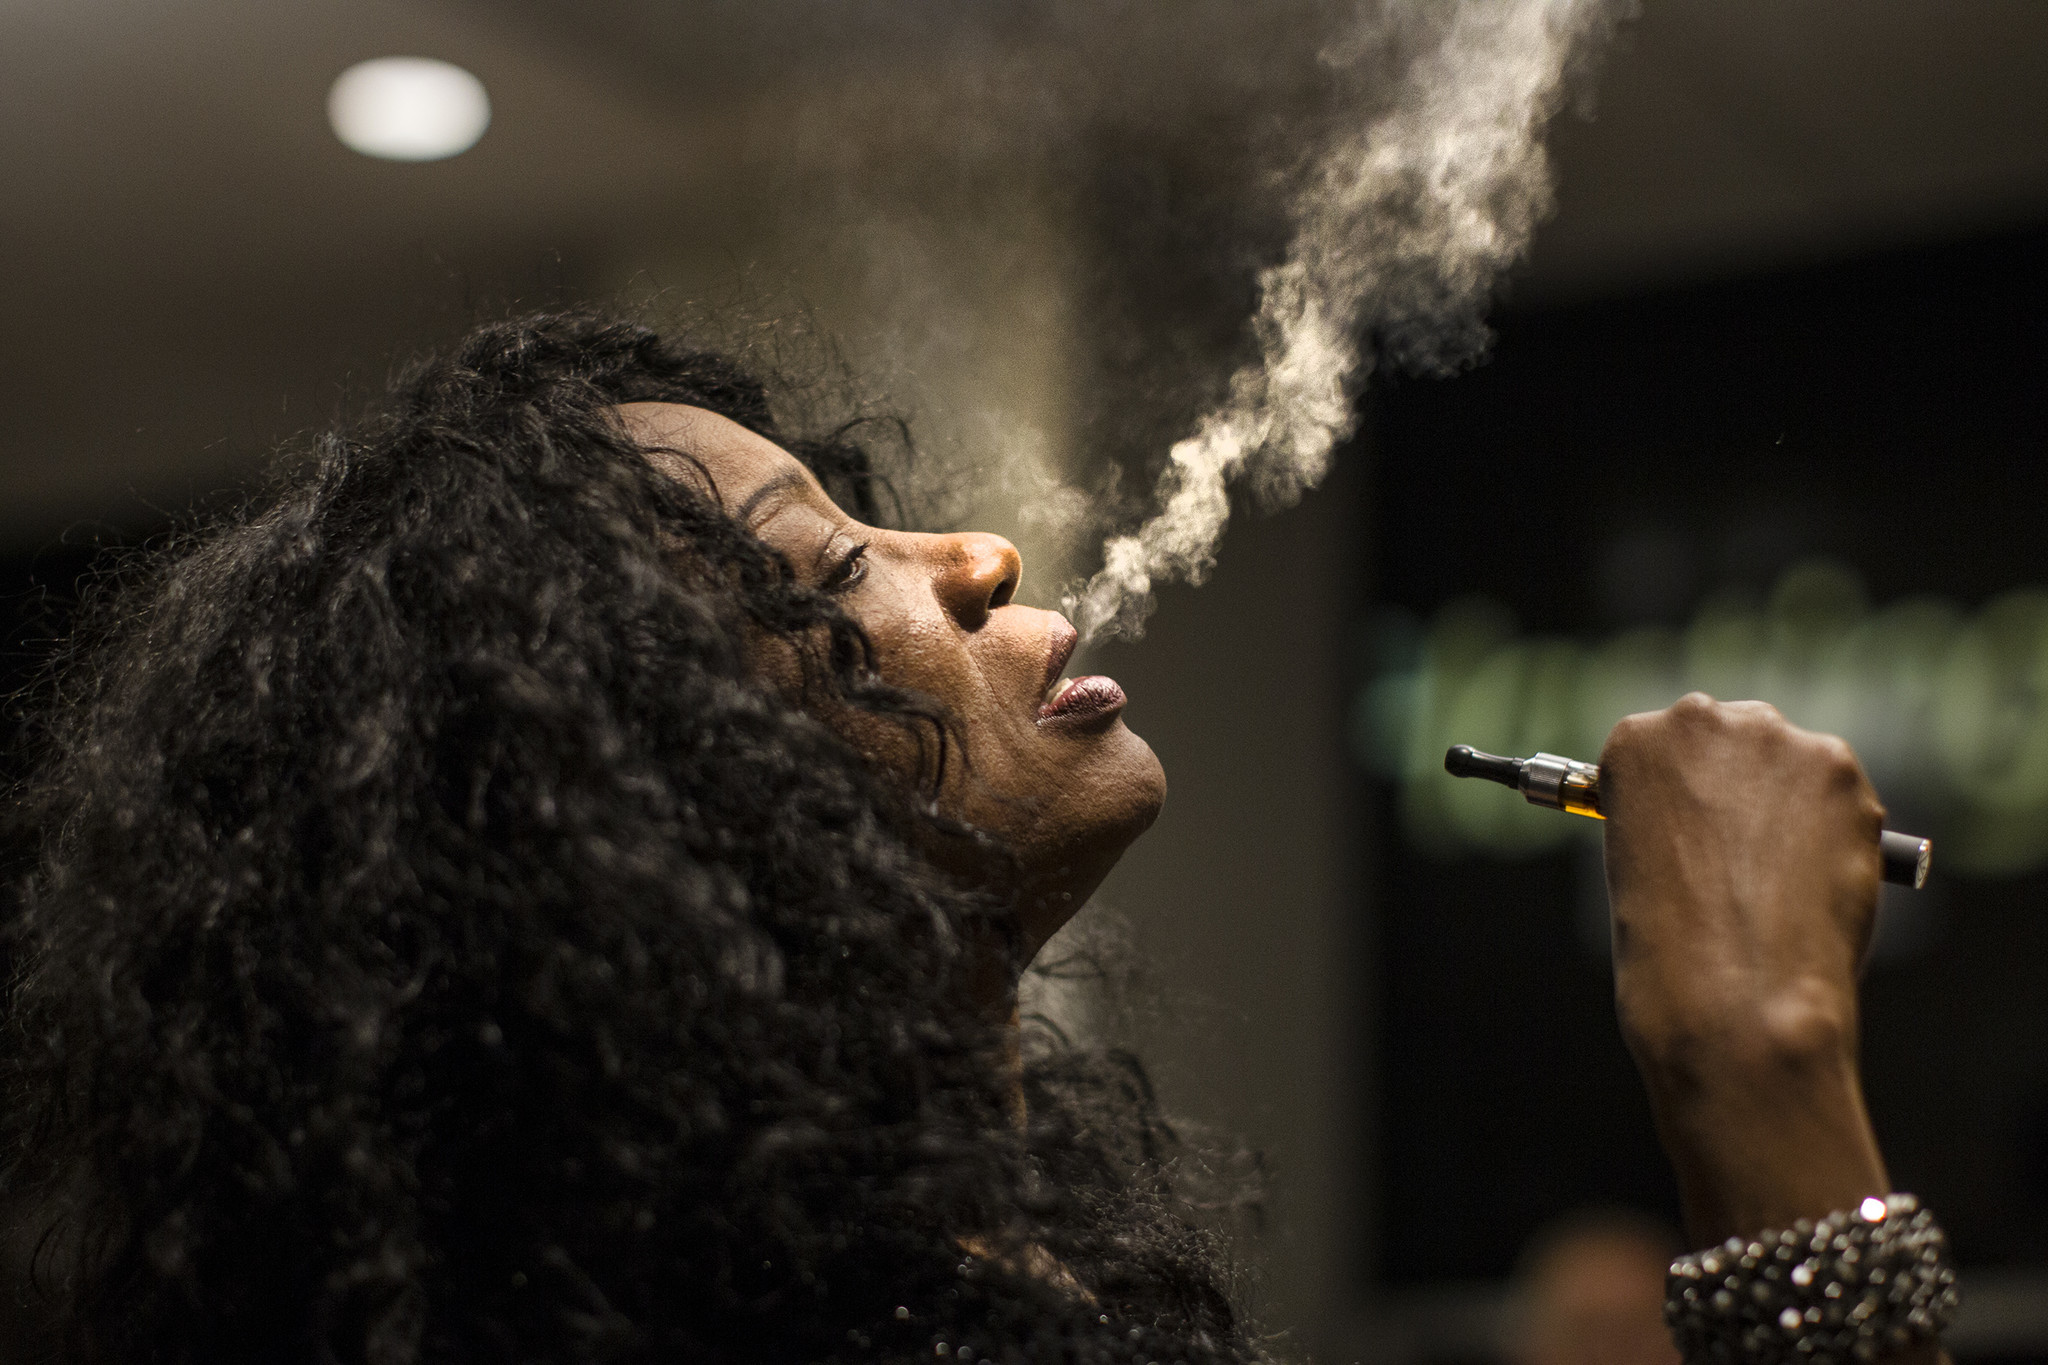 california s smoking age raised from 18 to 21 under bills signed california s smoking age raised from 18 to 21 under bills signed by gov brown la times